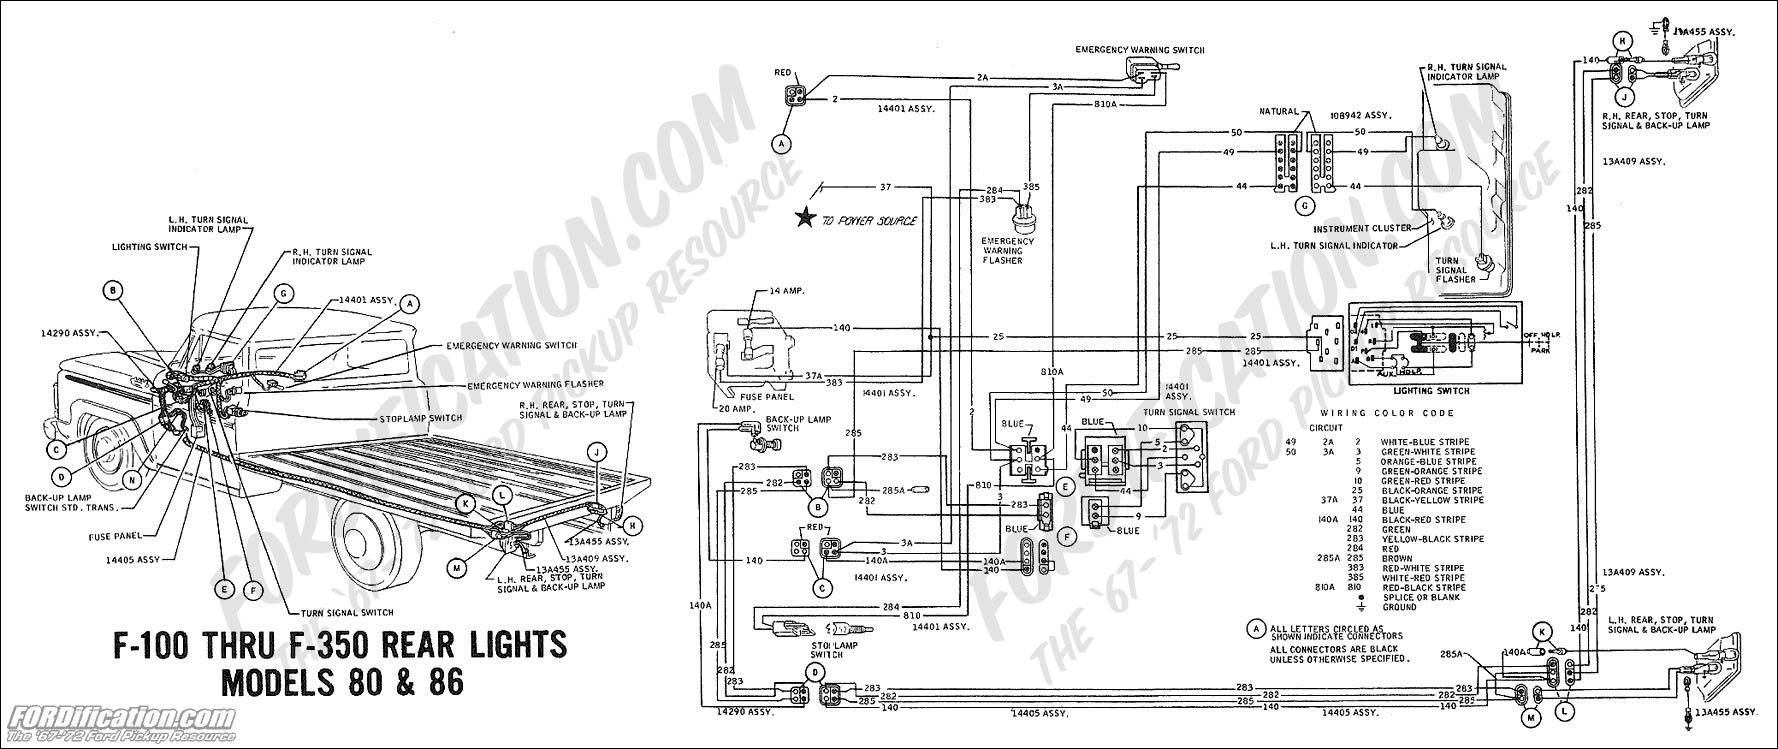 wiring_69rearlights mdls80 86 ford truck technical drawings and schematics section h wiring 2013 Ford F350 Wiring Diagram at nearapp.co